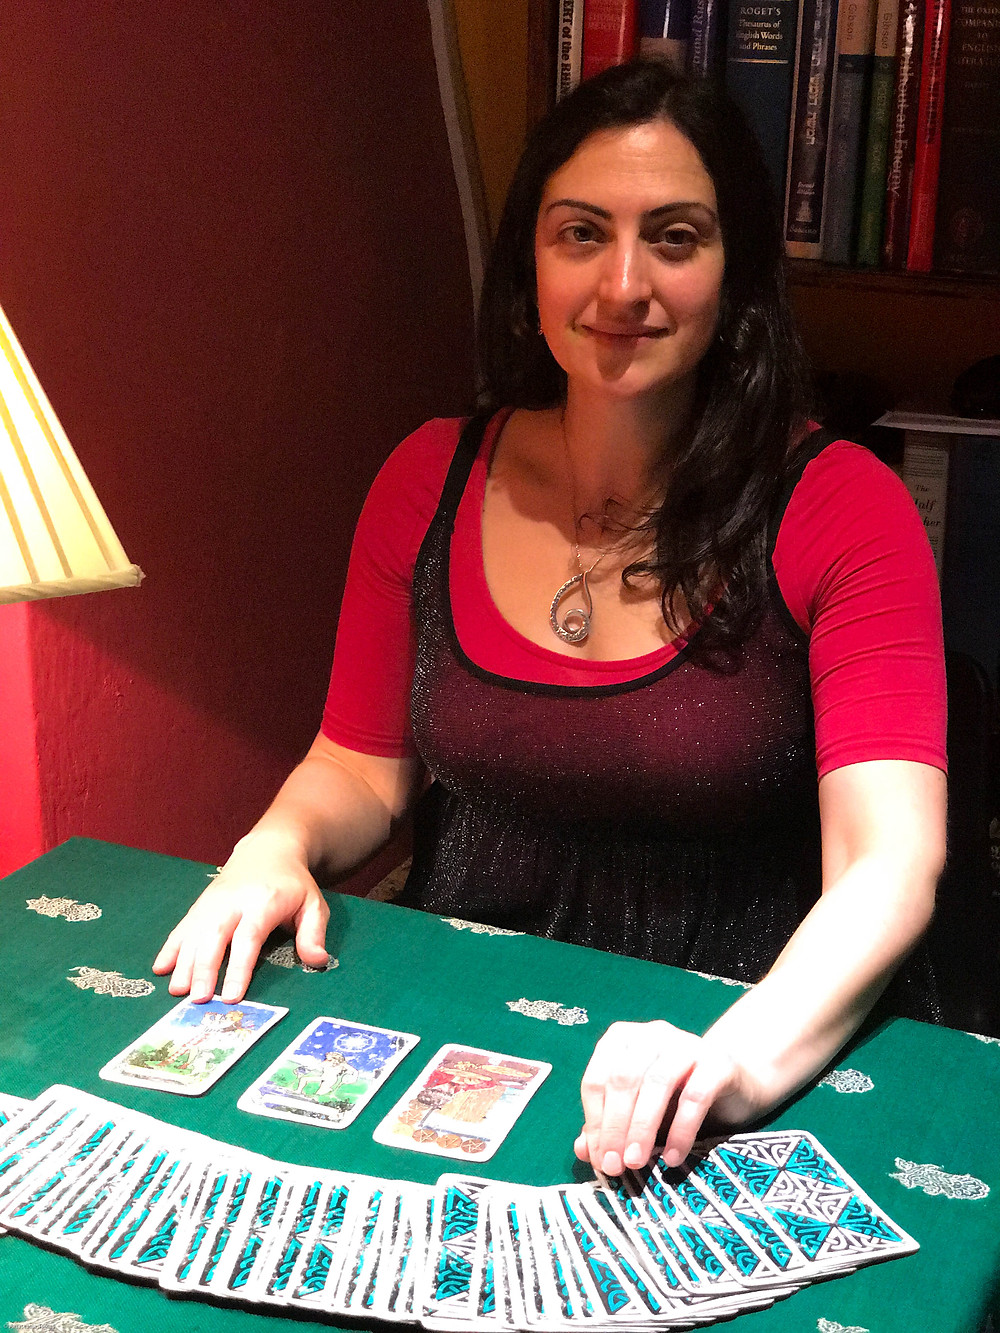 Michelle Chaso - Tarot reader at Treadwell's London